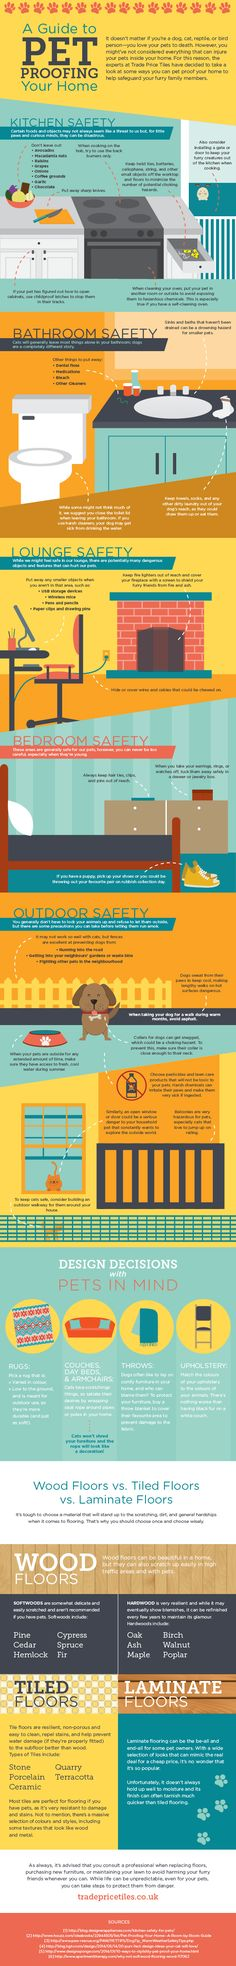 Have you pet proofed your home? Find out what steps you can take to do it by checking out this helpful infographic.